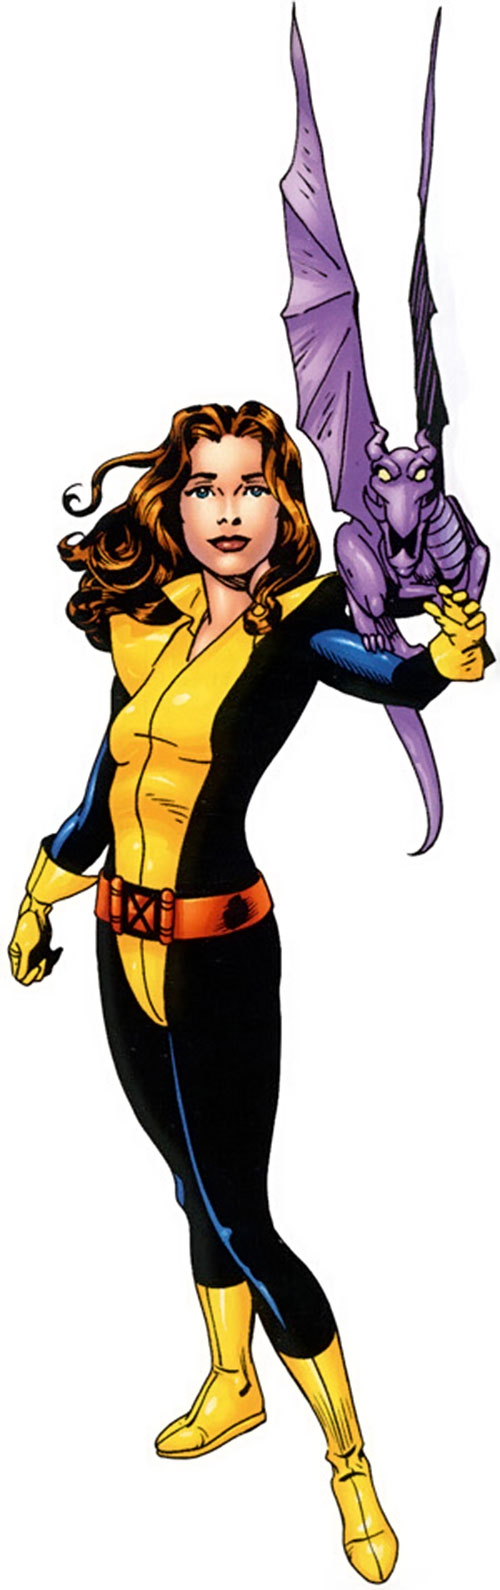 Shadowcat of the X-Men (Kitty Pryde) (Marvel Comics) with Lockheed perched on her arm